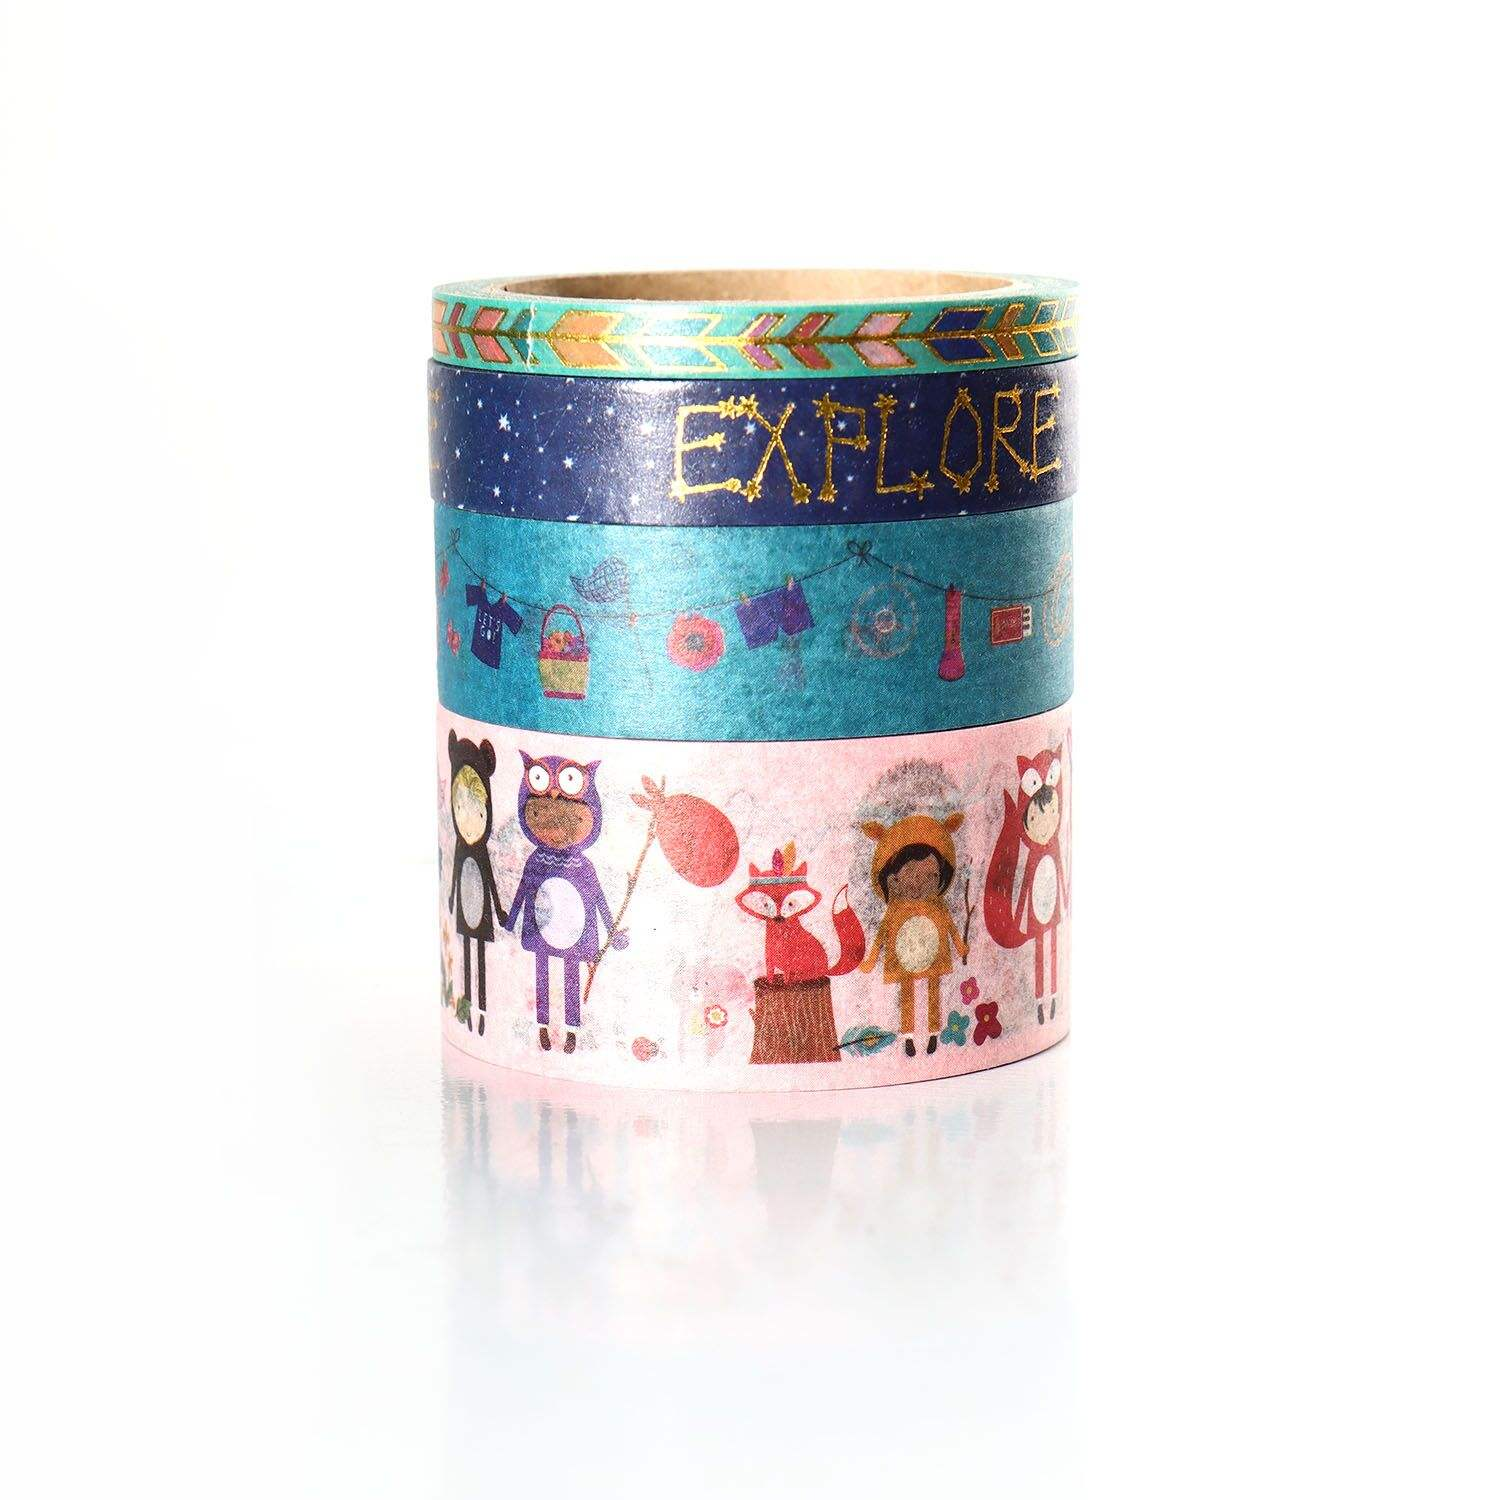 Hot Deal Tape With Printing In Stock Tape With Printing Custom Printed Washi Tape Sets For Diy Craft